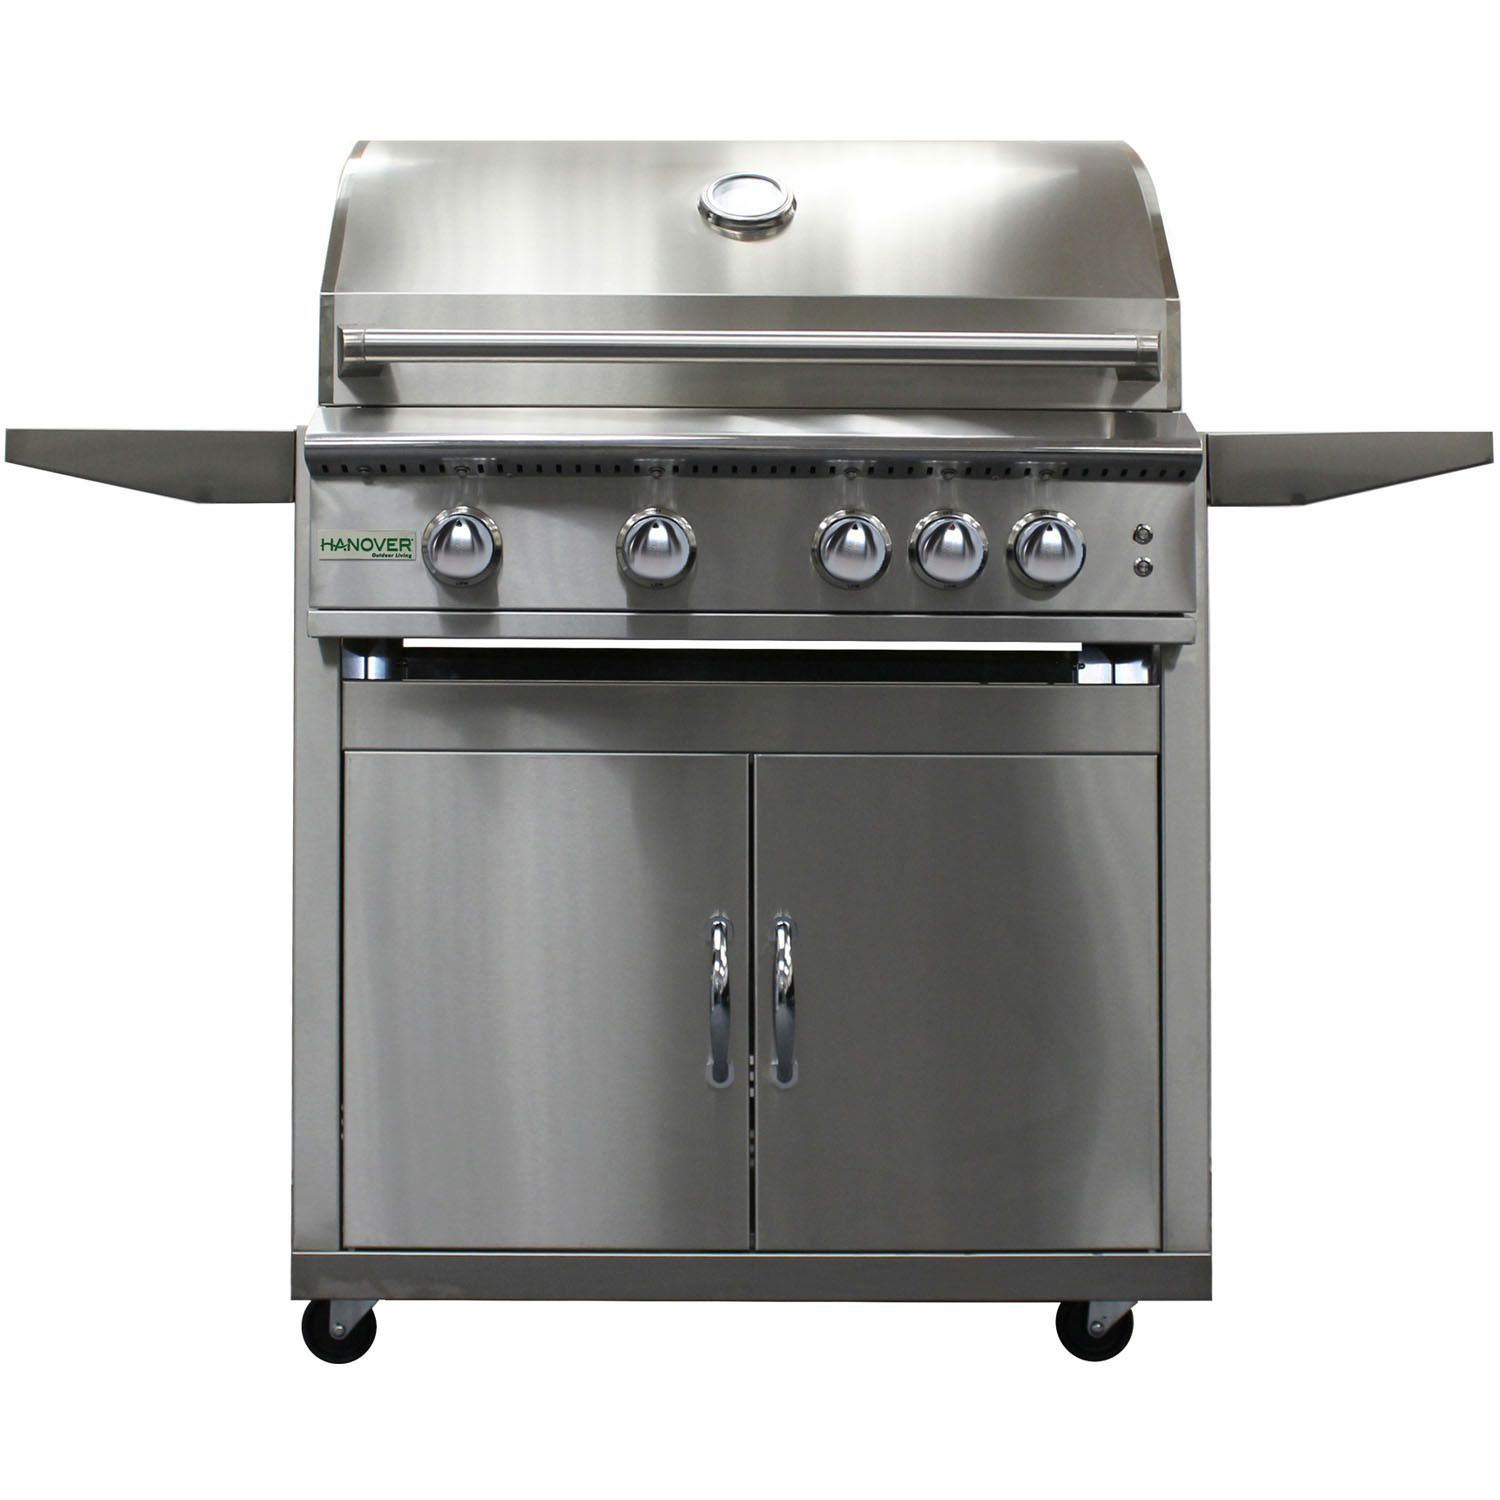 Hanover Grills Stainless Steel 32-inch 4-burner Liquid Propane Grill with Cart (Stainless), Silver